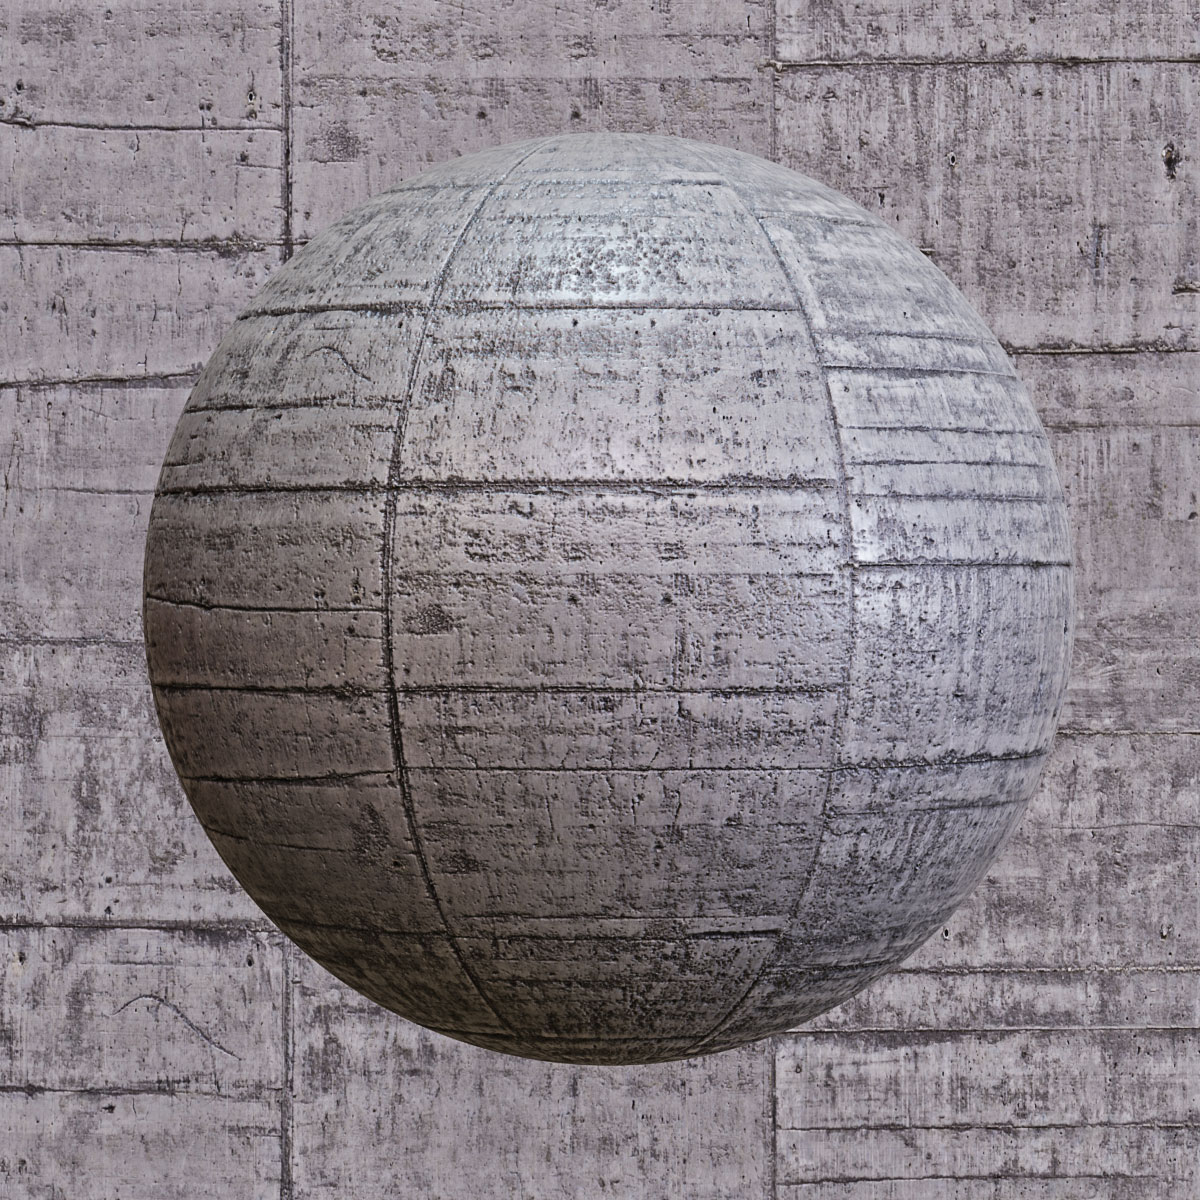 Texture-and-shader-creation-3dsmax-vray-corona-renderer-concrete-material-download